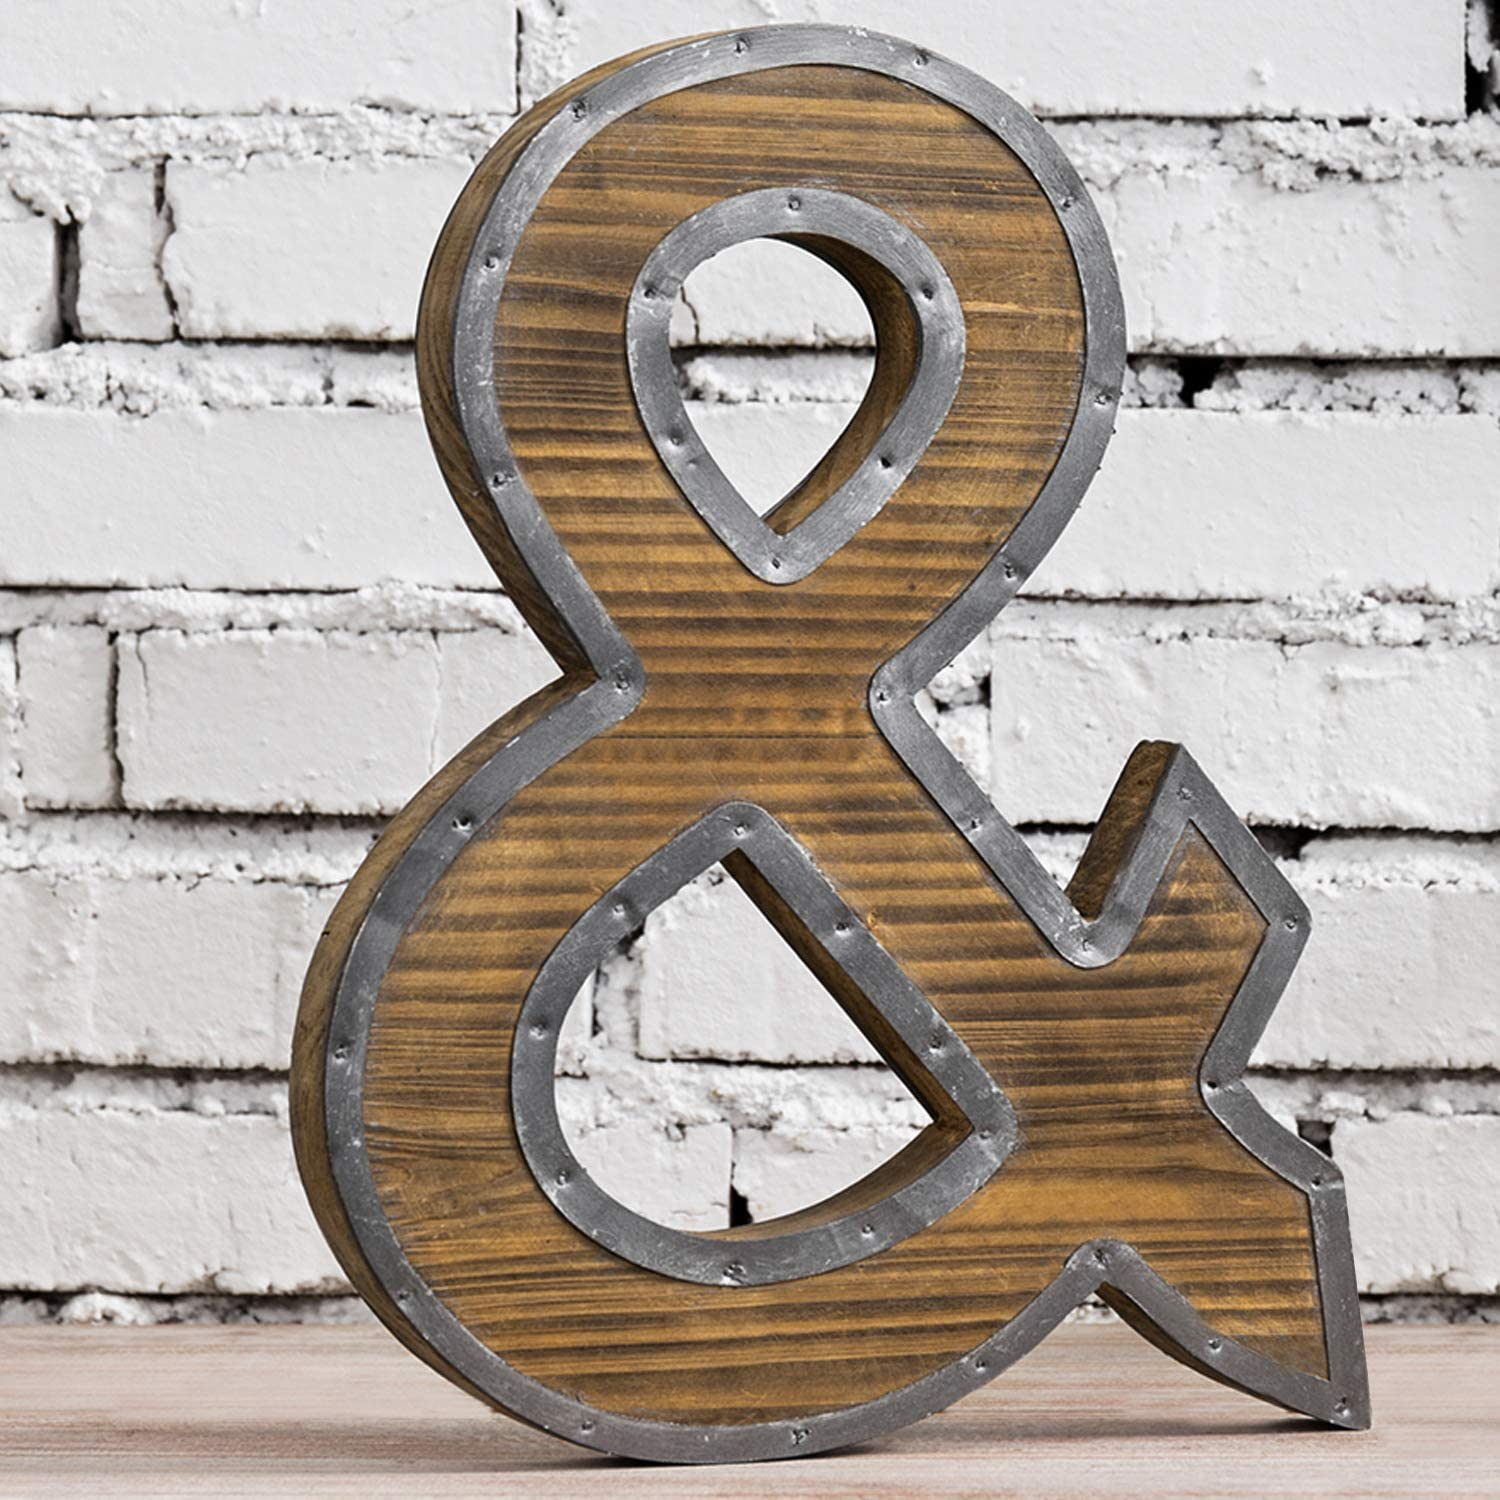 MyGift 13 x 9 Inch Industrial Style Burnt Brown Wood and Galvanized Metal Ampersand & Tabletop Freestanding Monogram Letter Decoration